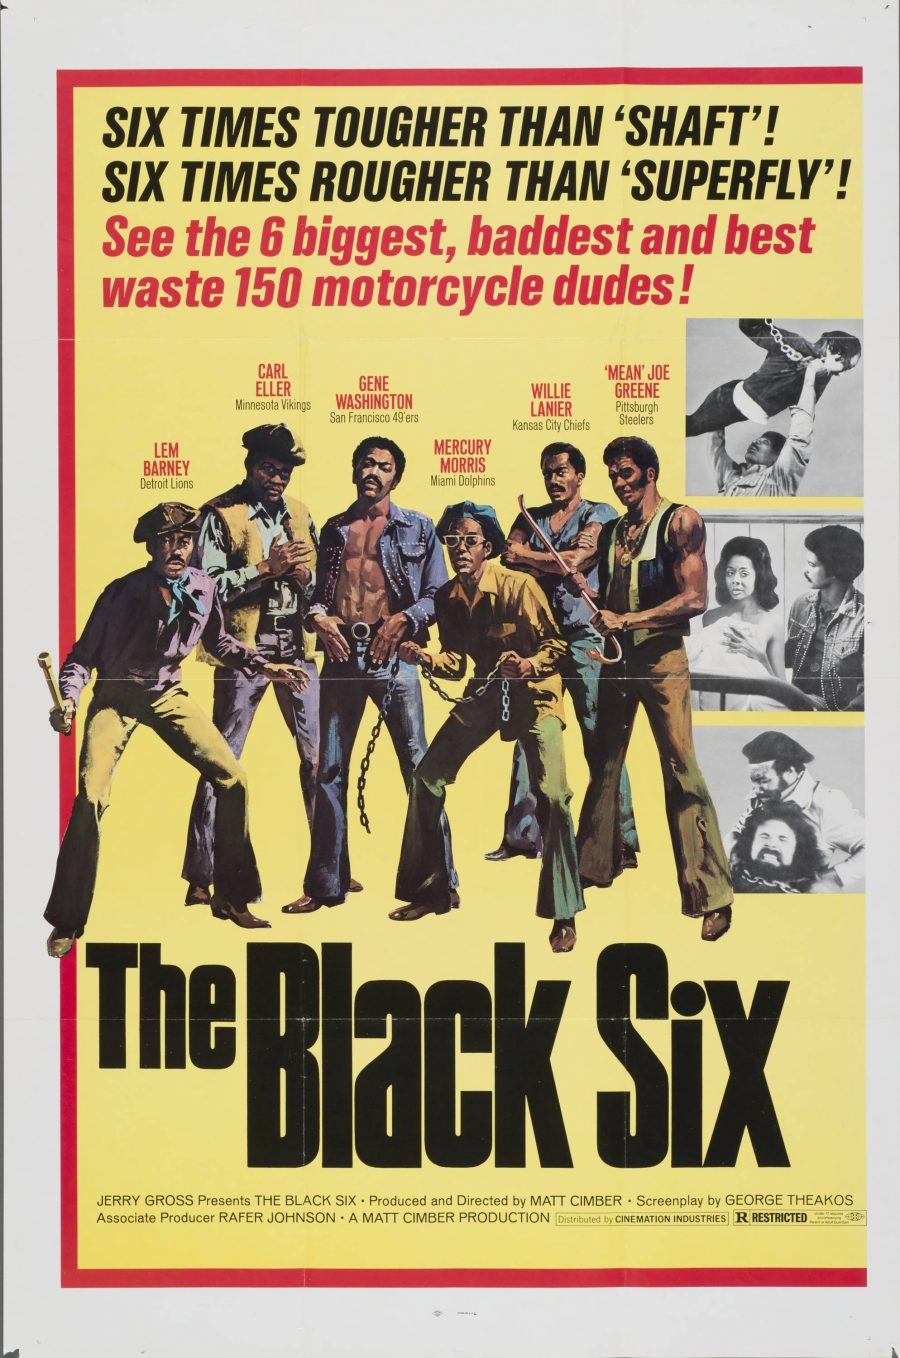 10,000 Classic Movie Posters Getting Digitized & Put Online by the Harry Ransom Center at UT-Austin: Free to Browse & Download Artes & contextos The Black Six e1516348086554